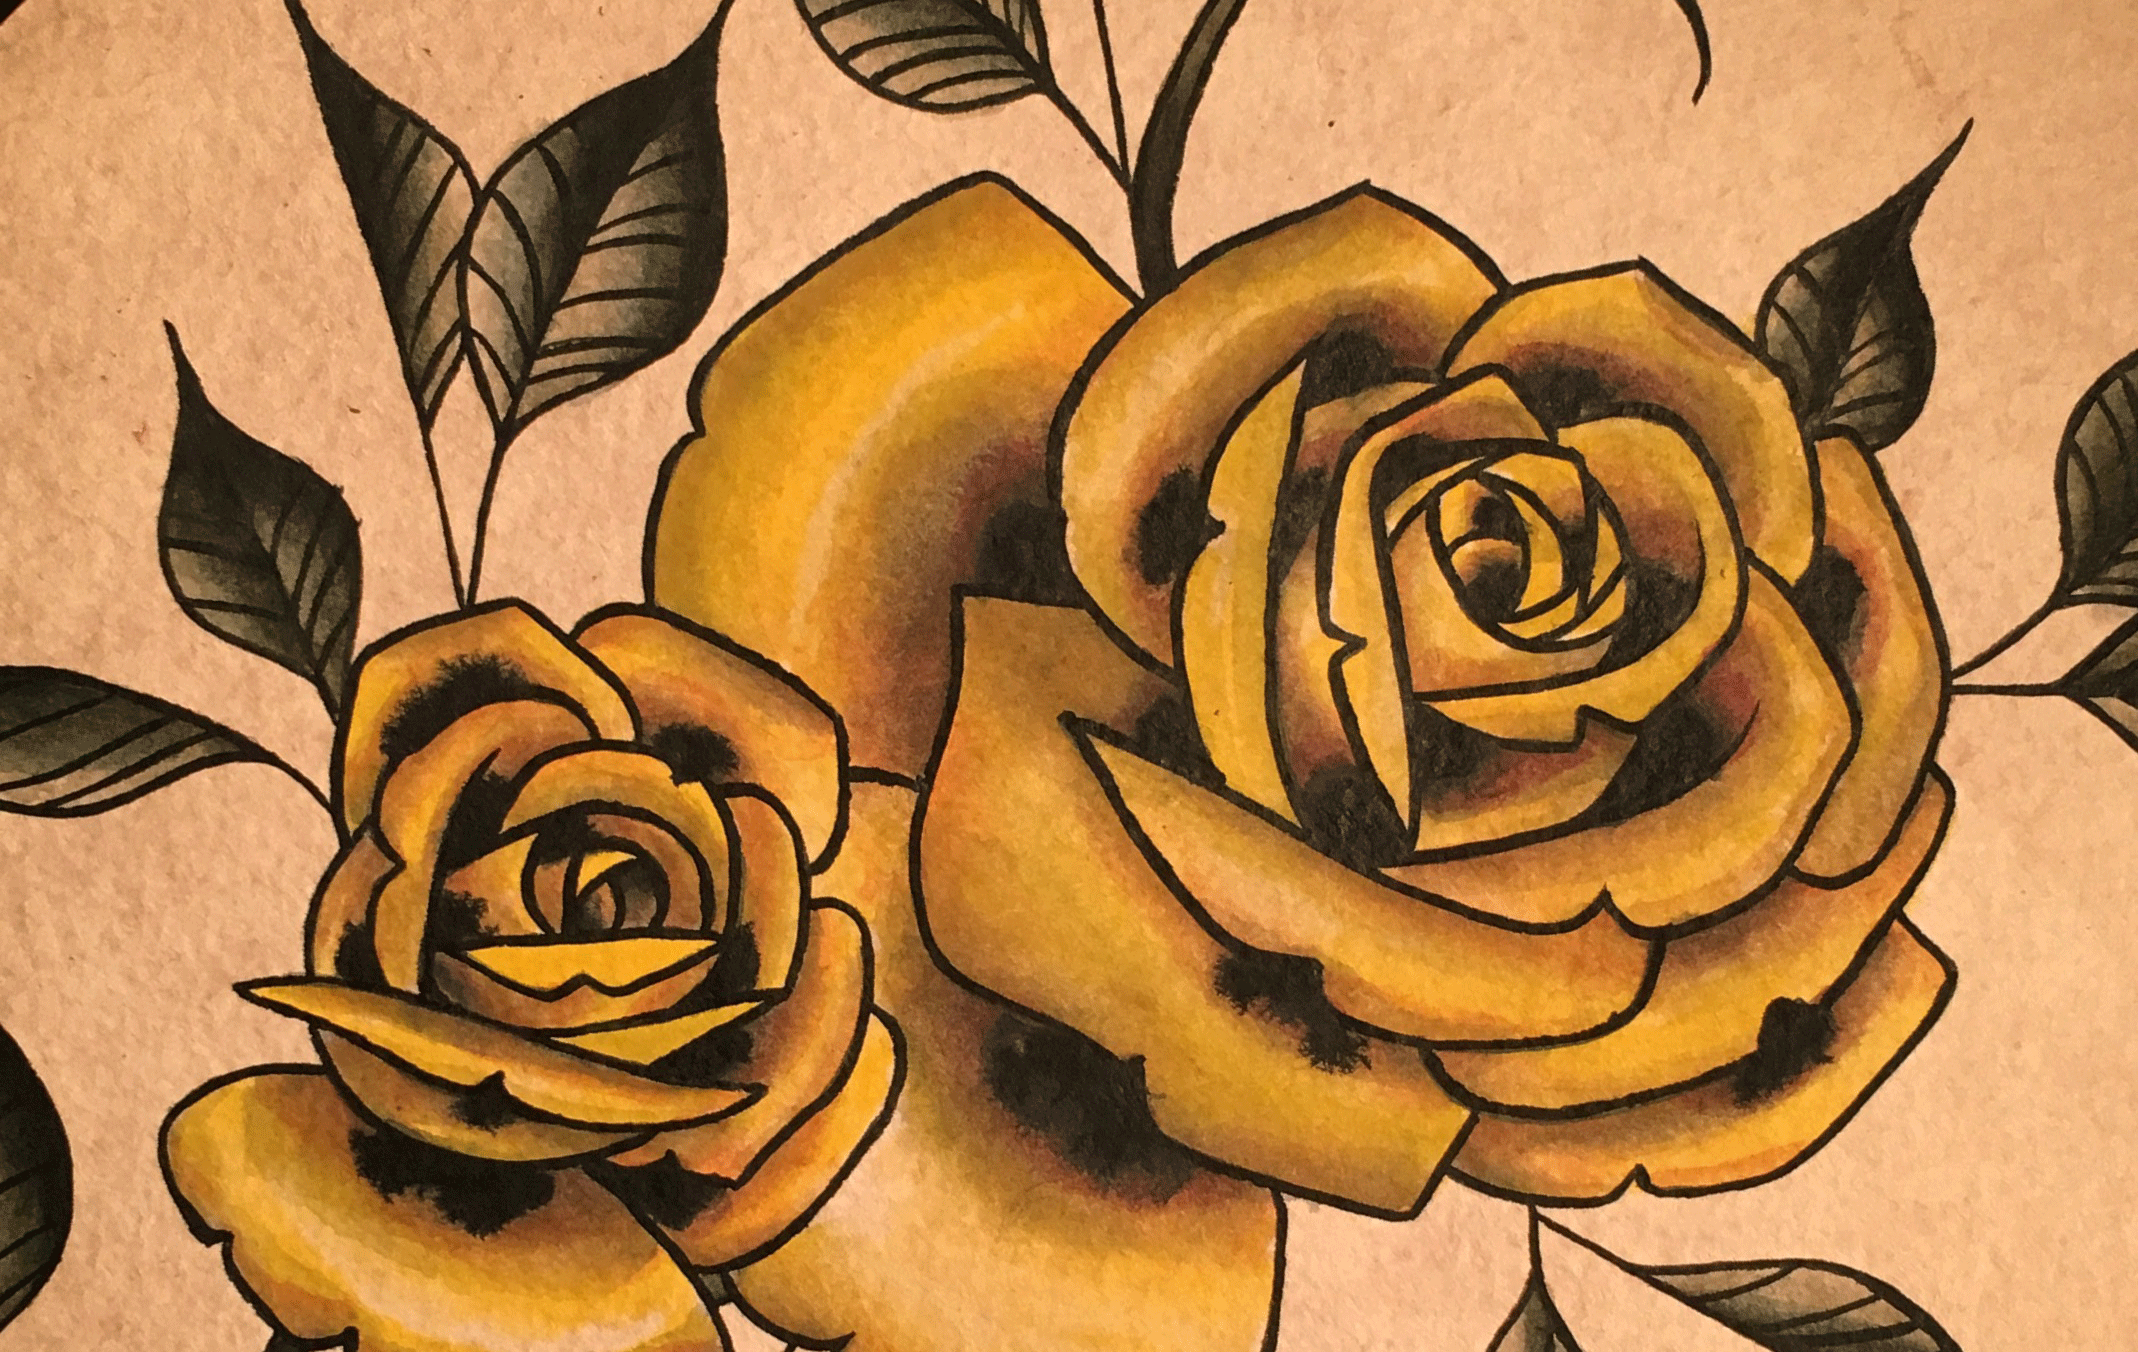 GoldRoses.Background1